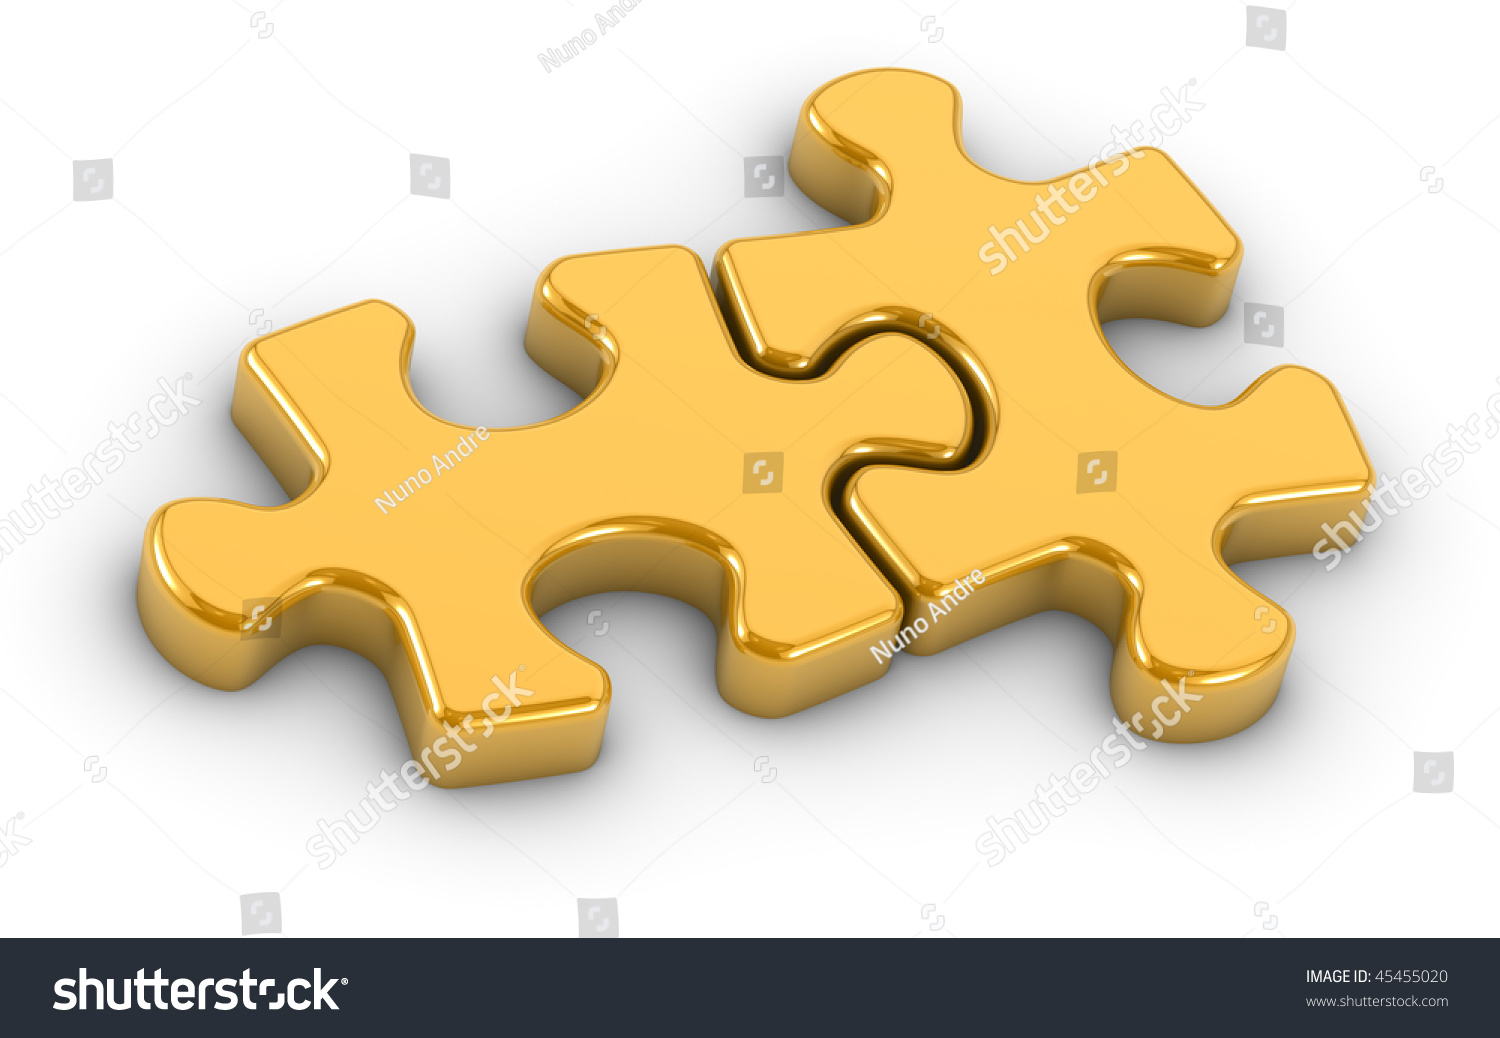 Two Golden Jigsaw Puzzle Pieces On A White Background Part Of Series